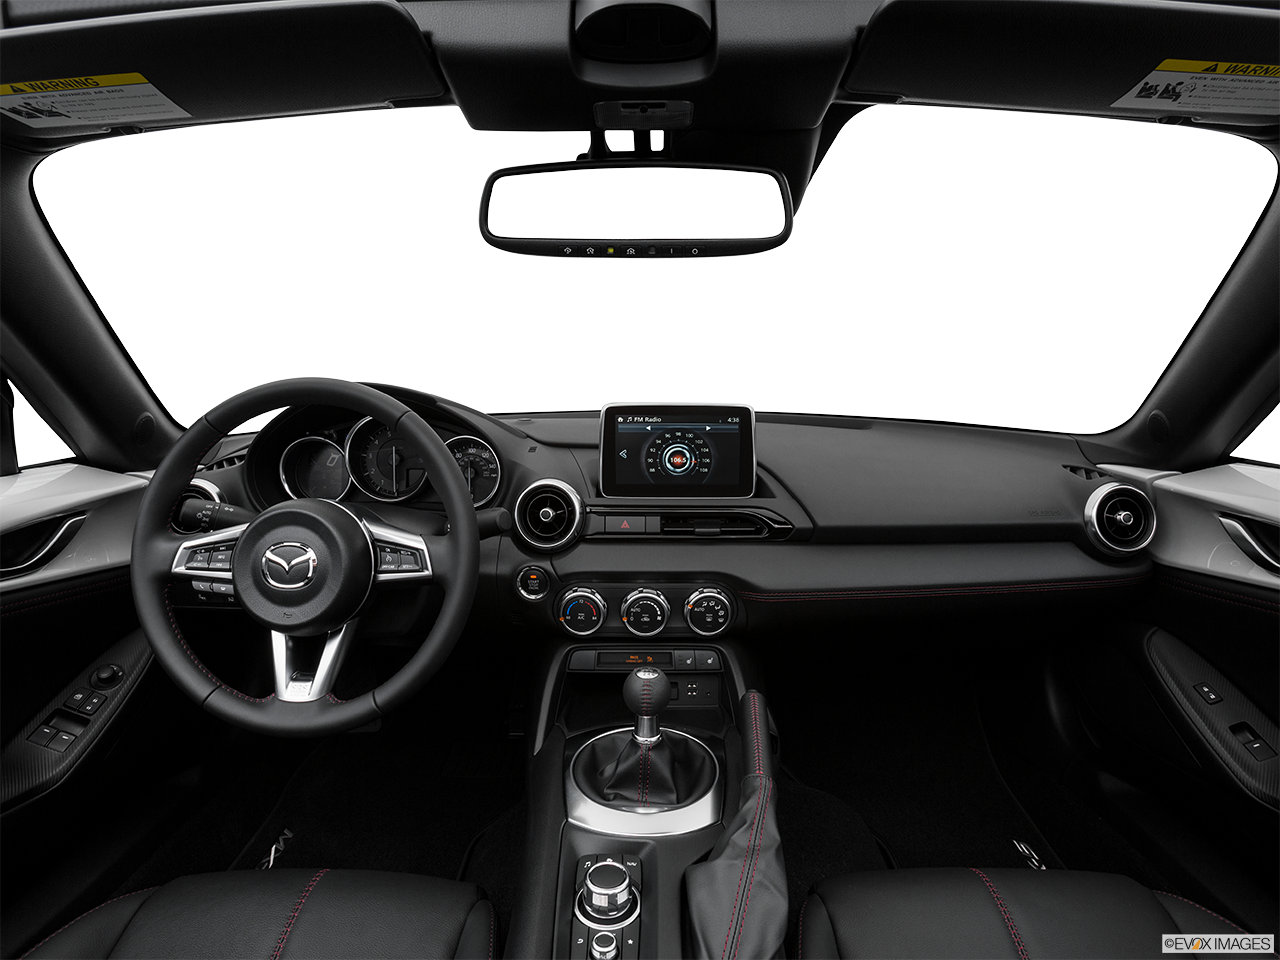 Interior View Of 2016 Mazda MX-5 Miata in Los Angeles